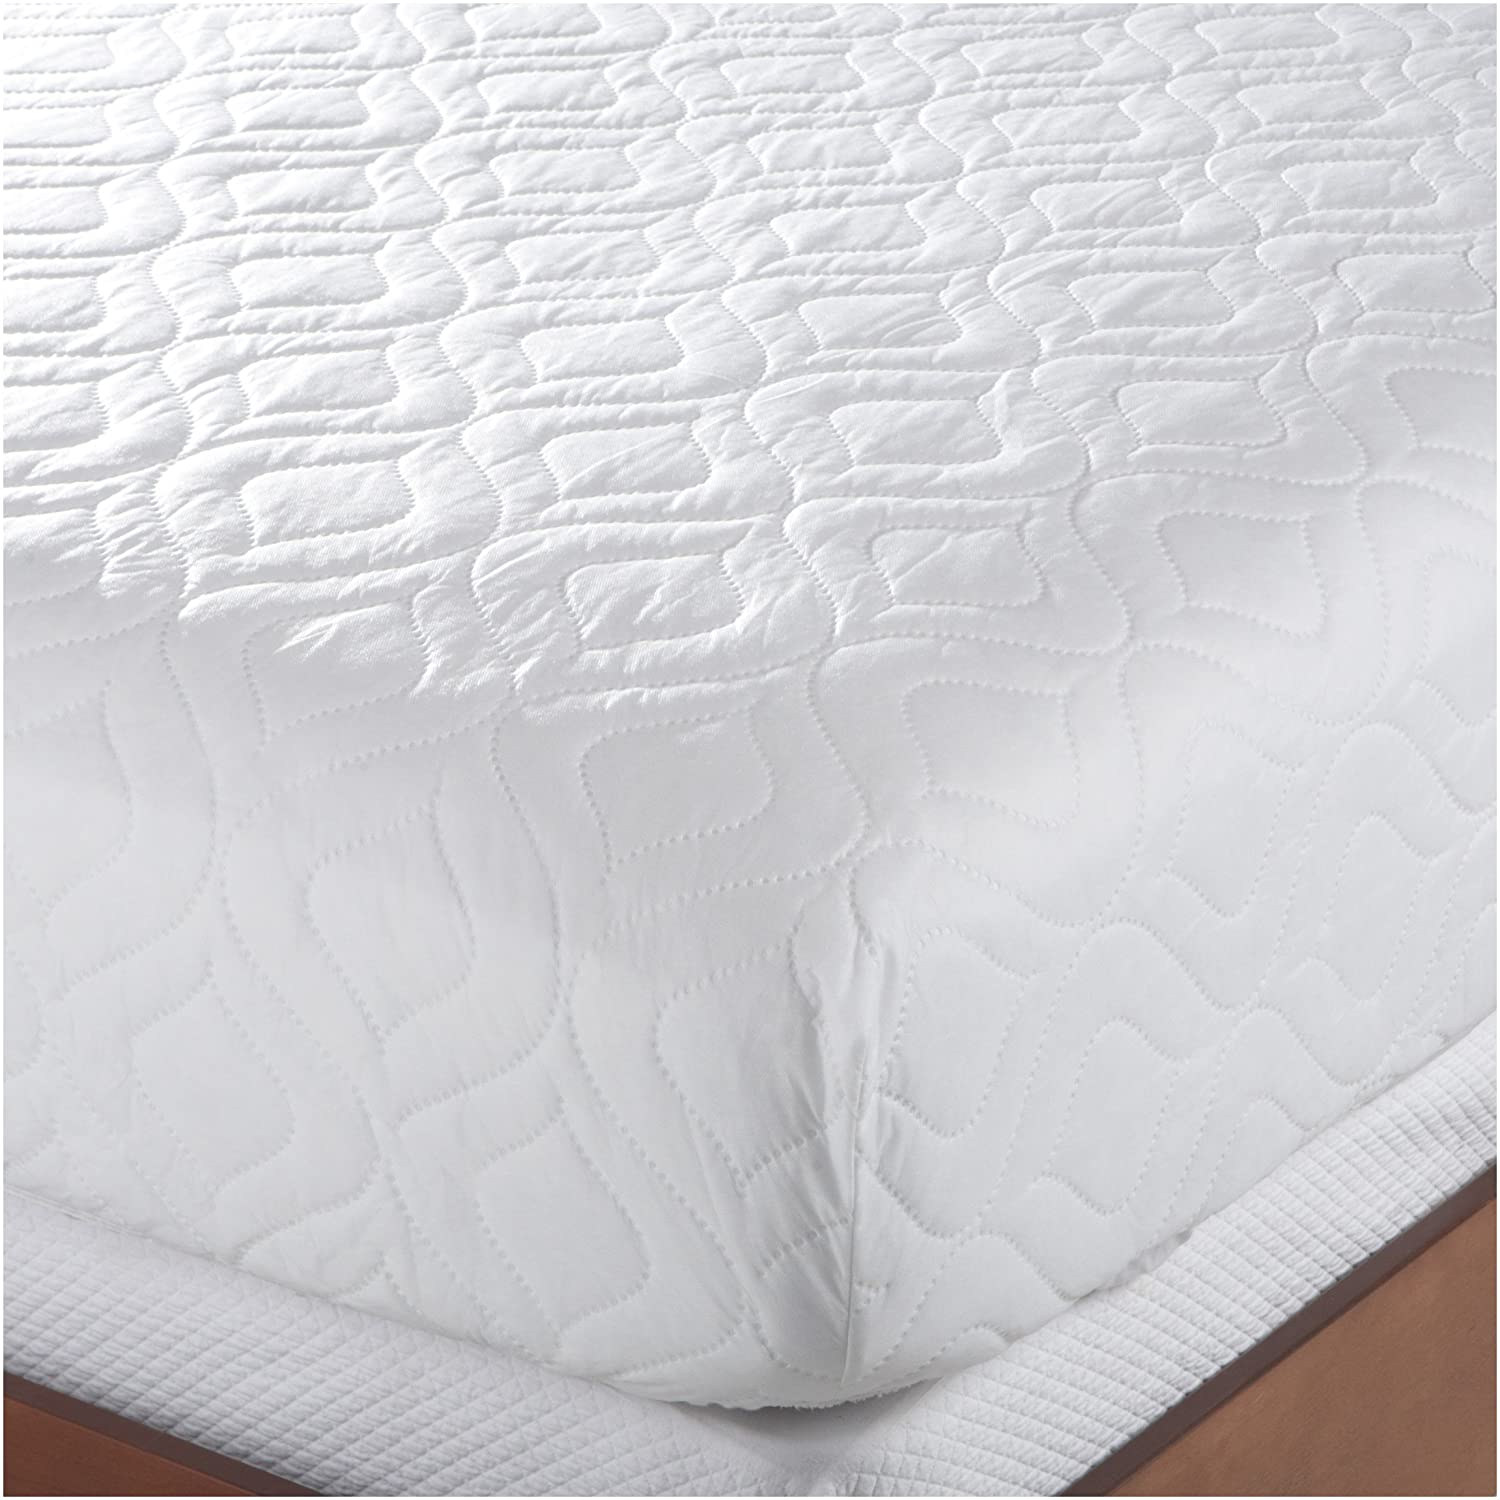 mattress benefits cushion topper pillow gallery the of bee get plan can with top you home